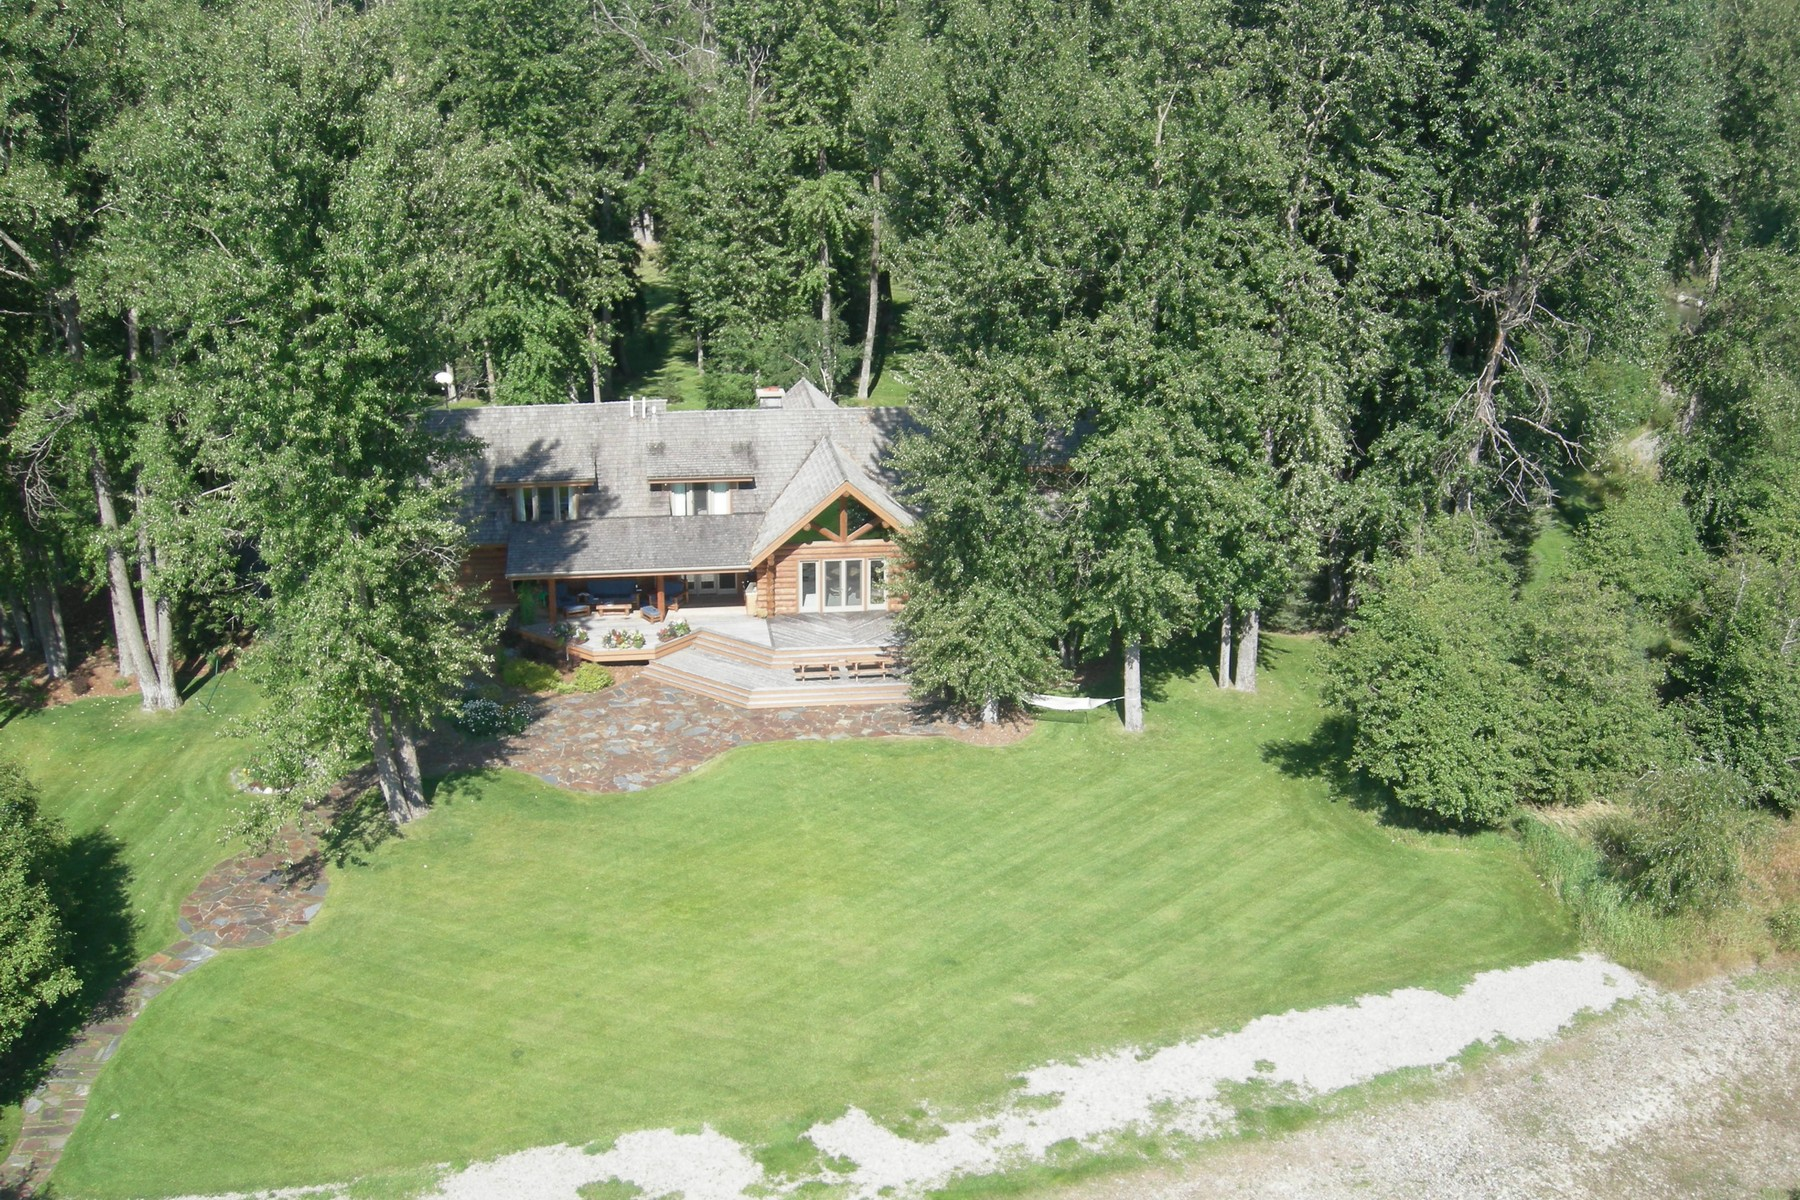 Casa Unifamiliar por un Venta en Swift Eagle 405 Delrey Rd Whitefish Lake, Whitefish, Montana, 59937 Estados Unidos